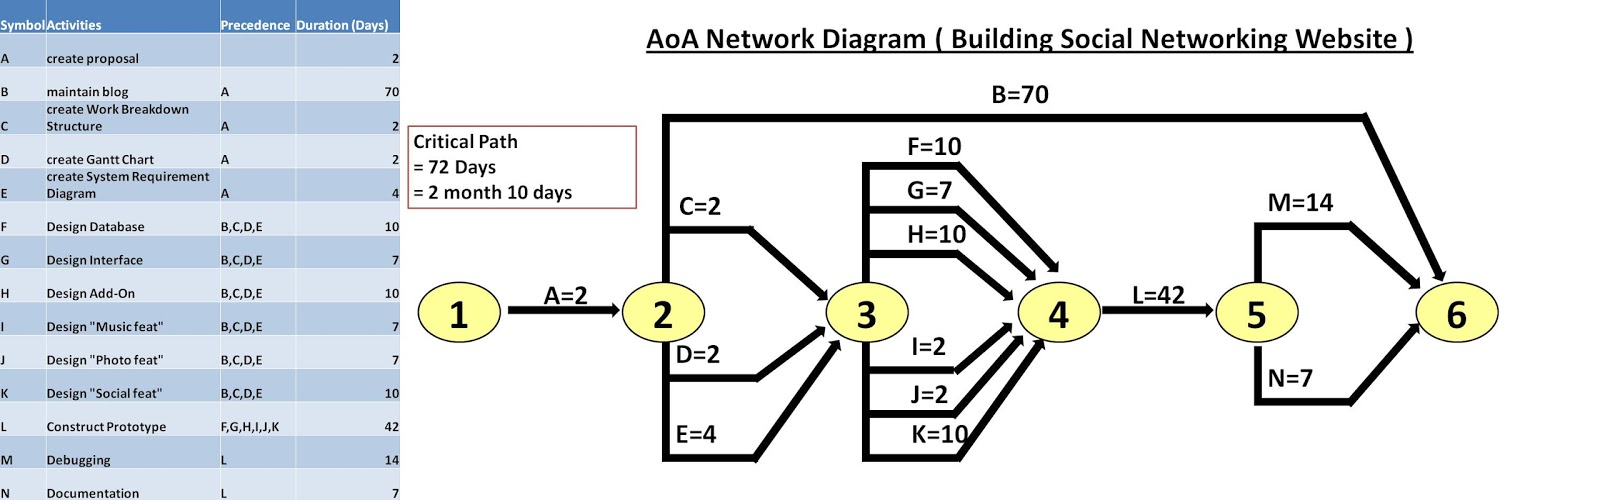 Aoa Diagram Generator Image collections - How To Guide And ...